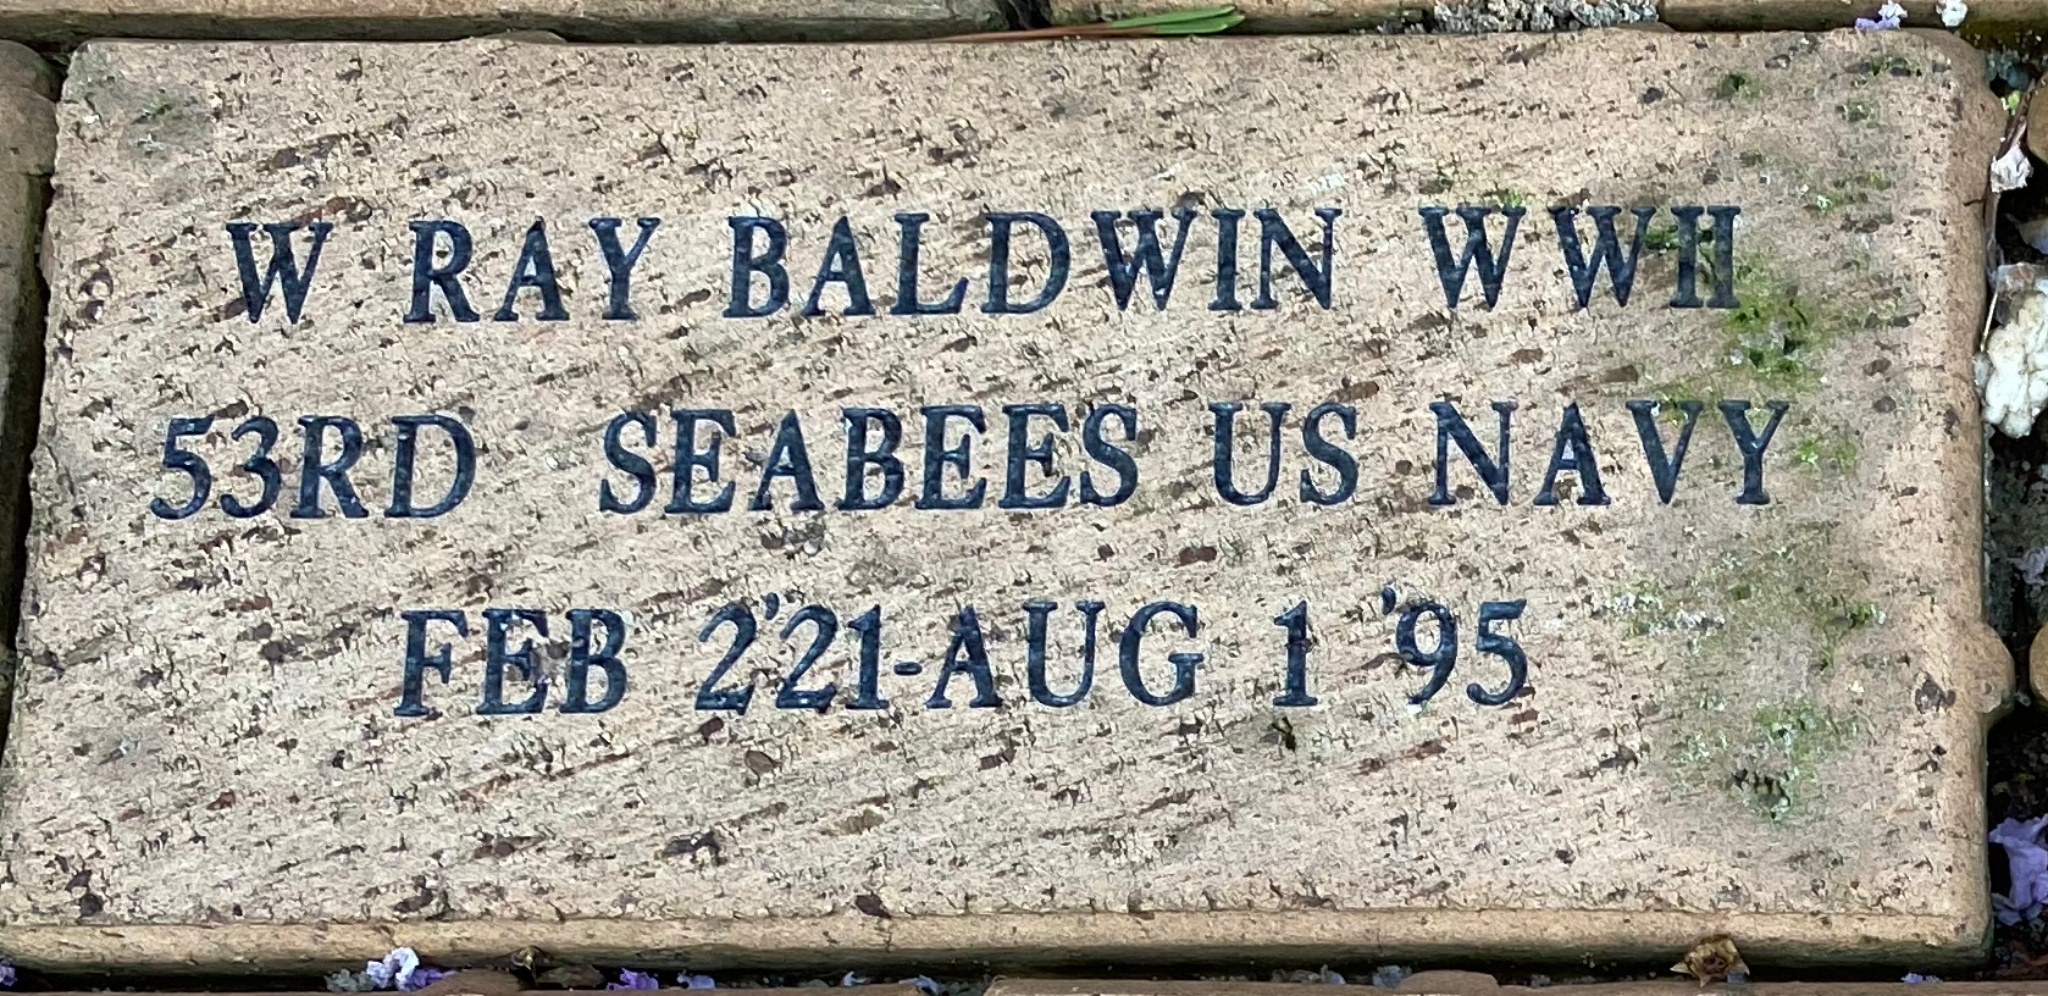 W RAY BALDWIN WWII 53'RD SEABEES US NAVY FEB 2''21-AUG 1' '95